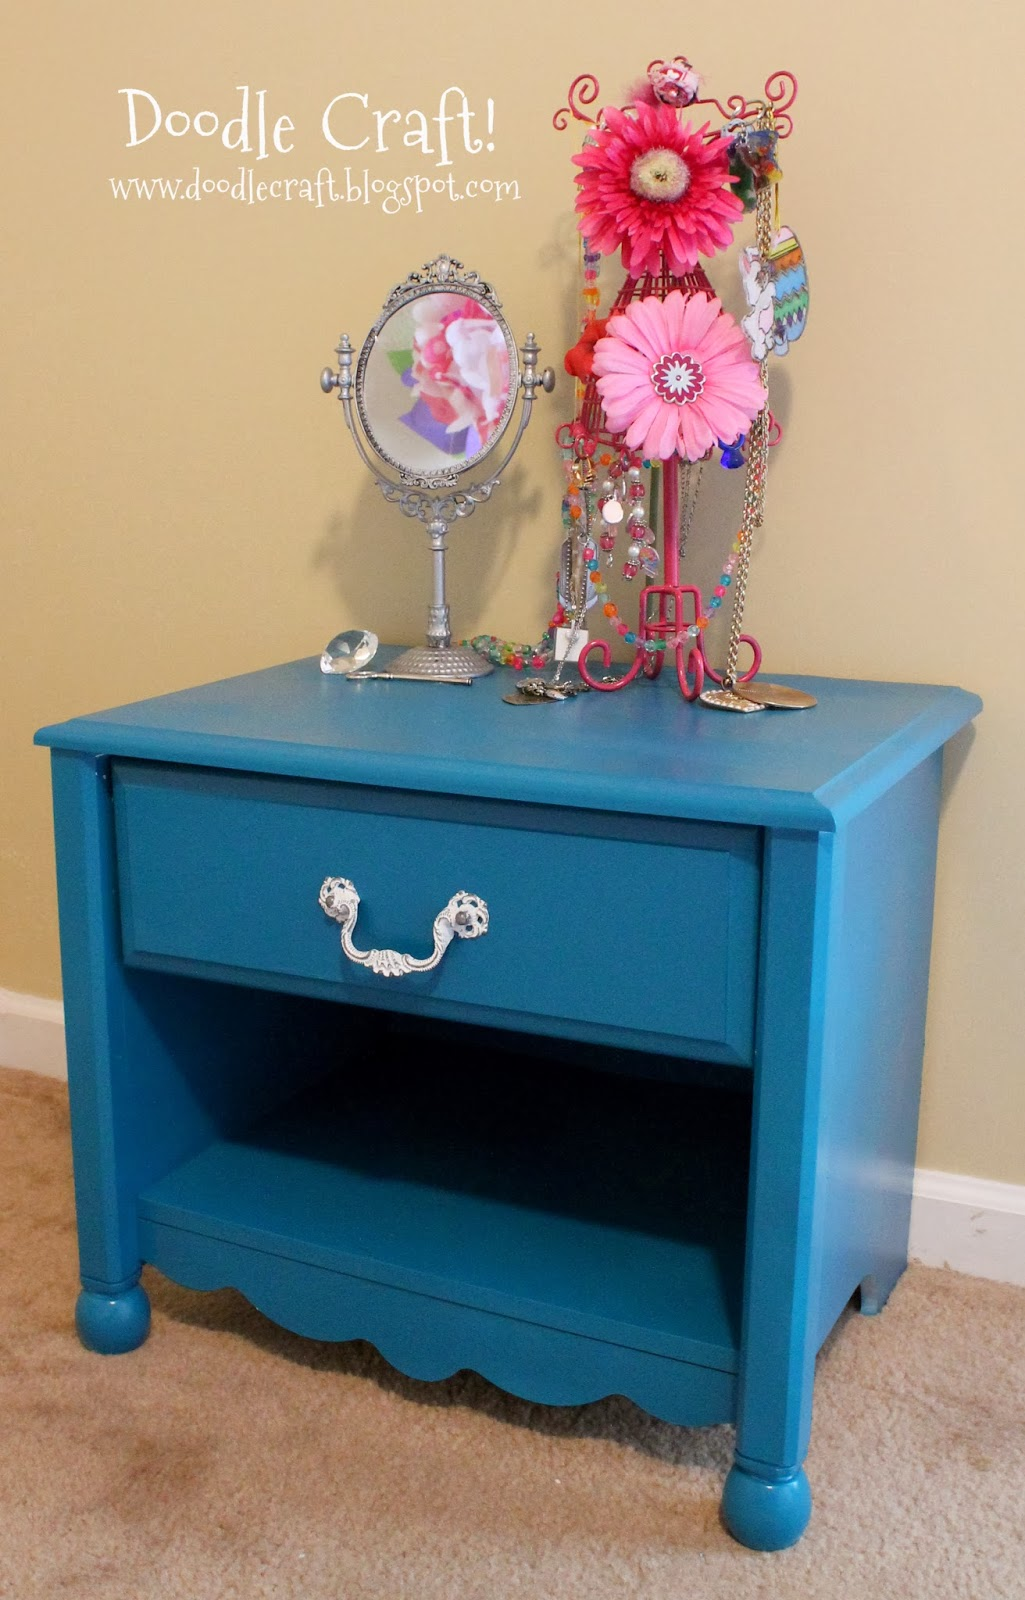 My Little Pony Table And Chairs Cheap Vanity Chair Doodlecraft Aqua Intervention